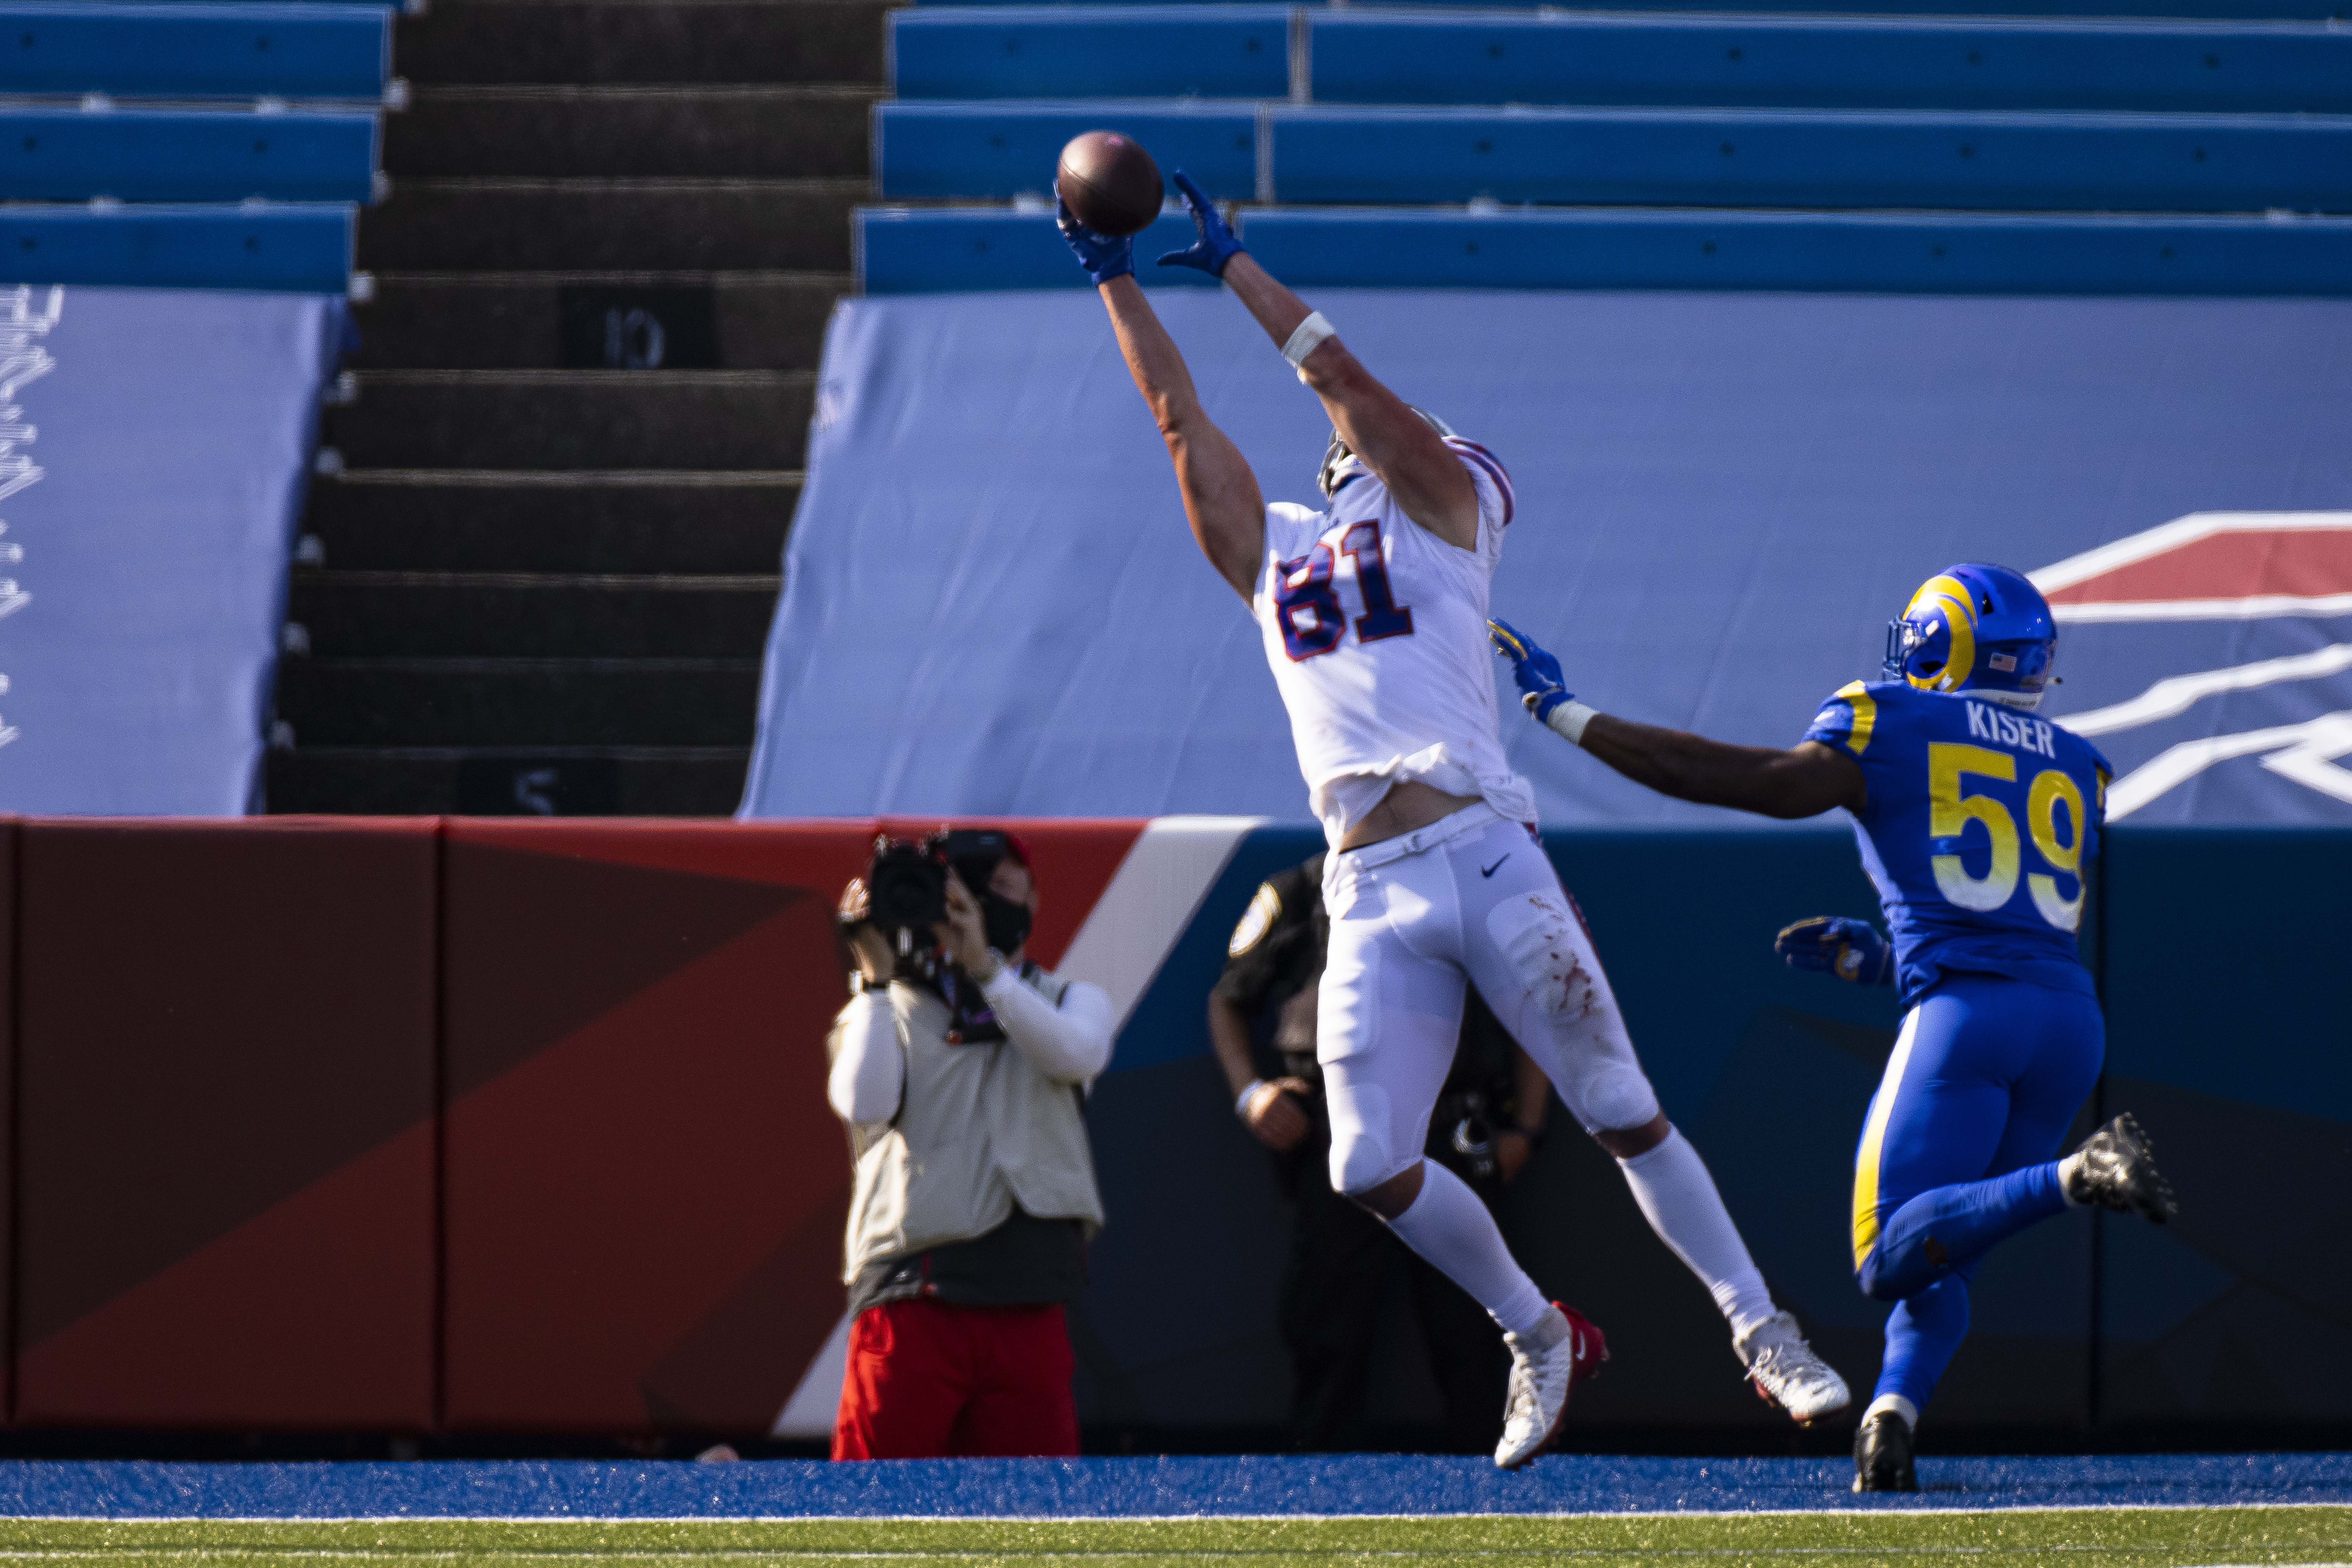 Tight end Tyler Kroft tests positive for COVID-19 | RochesterFirst